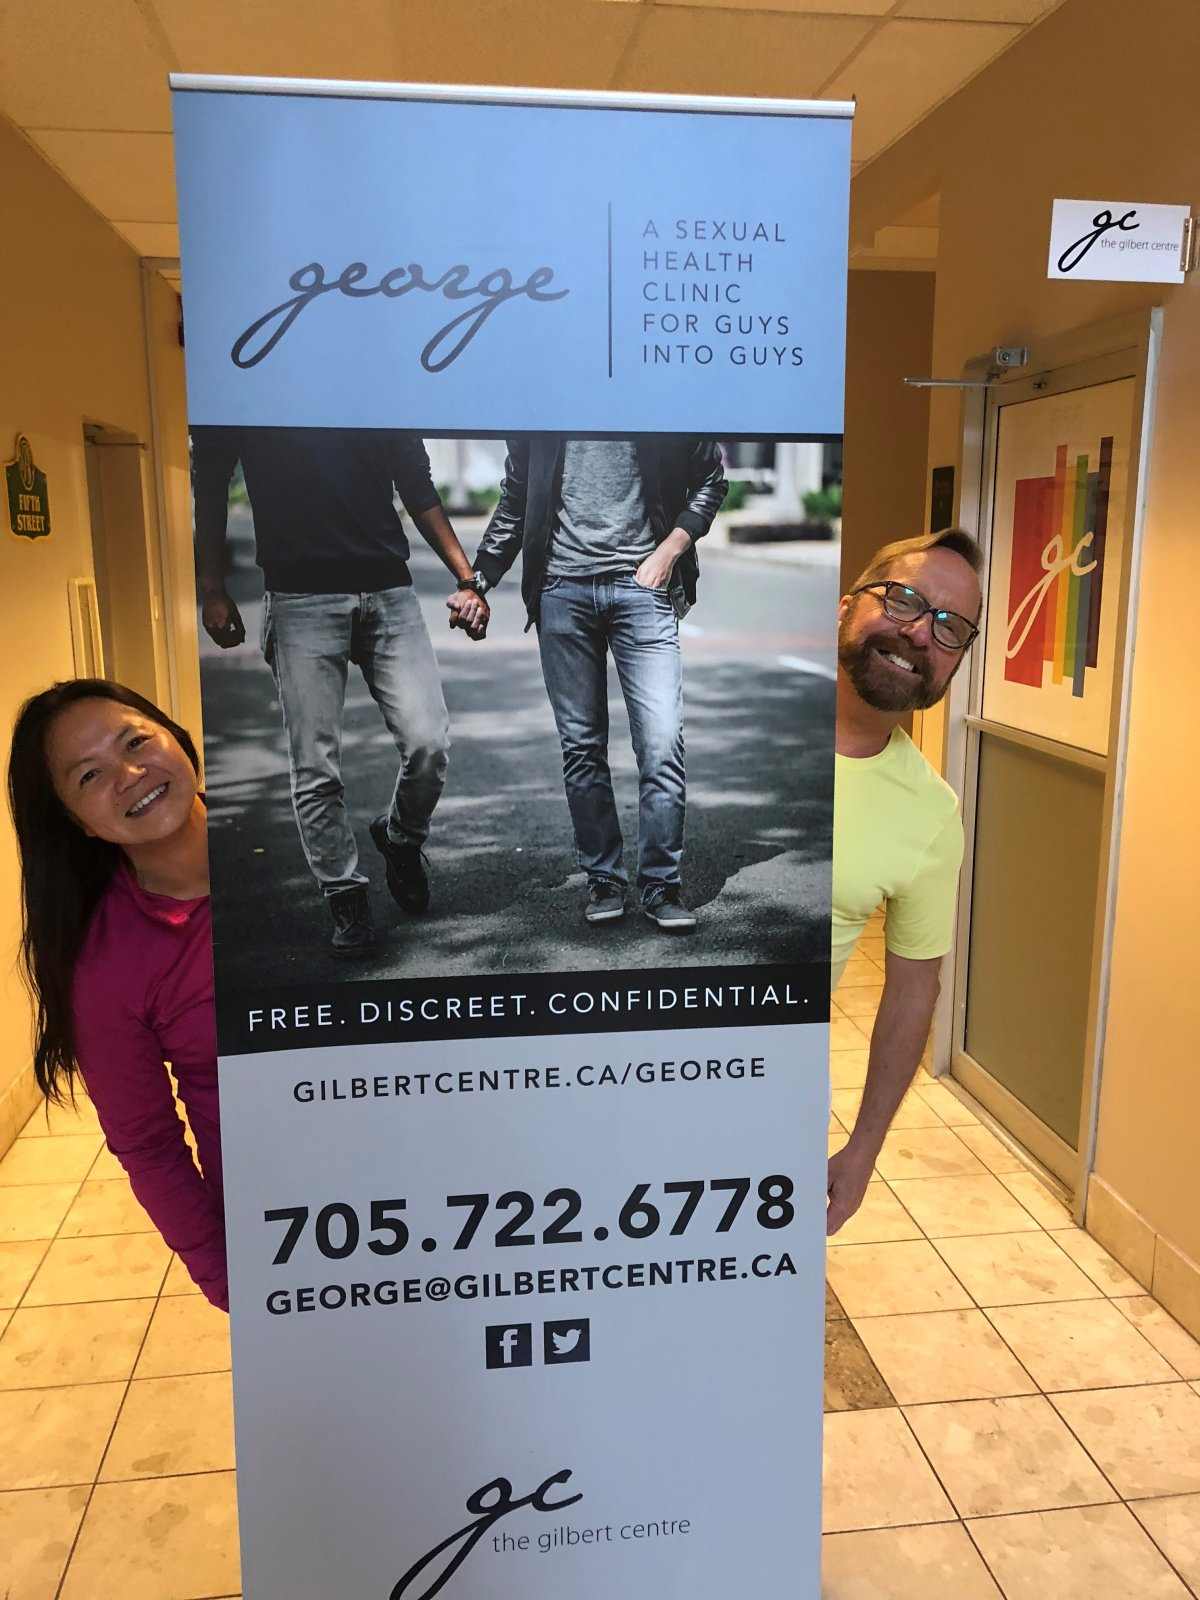 Yen Phan (left) and Gerry Croteau (right) pose with a poster for the new George men's sexual health clinic, set to open June 20.